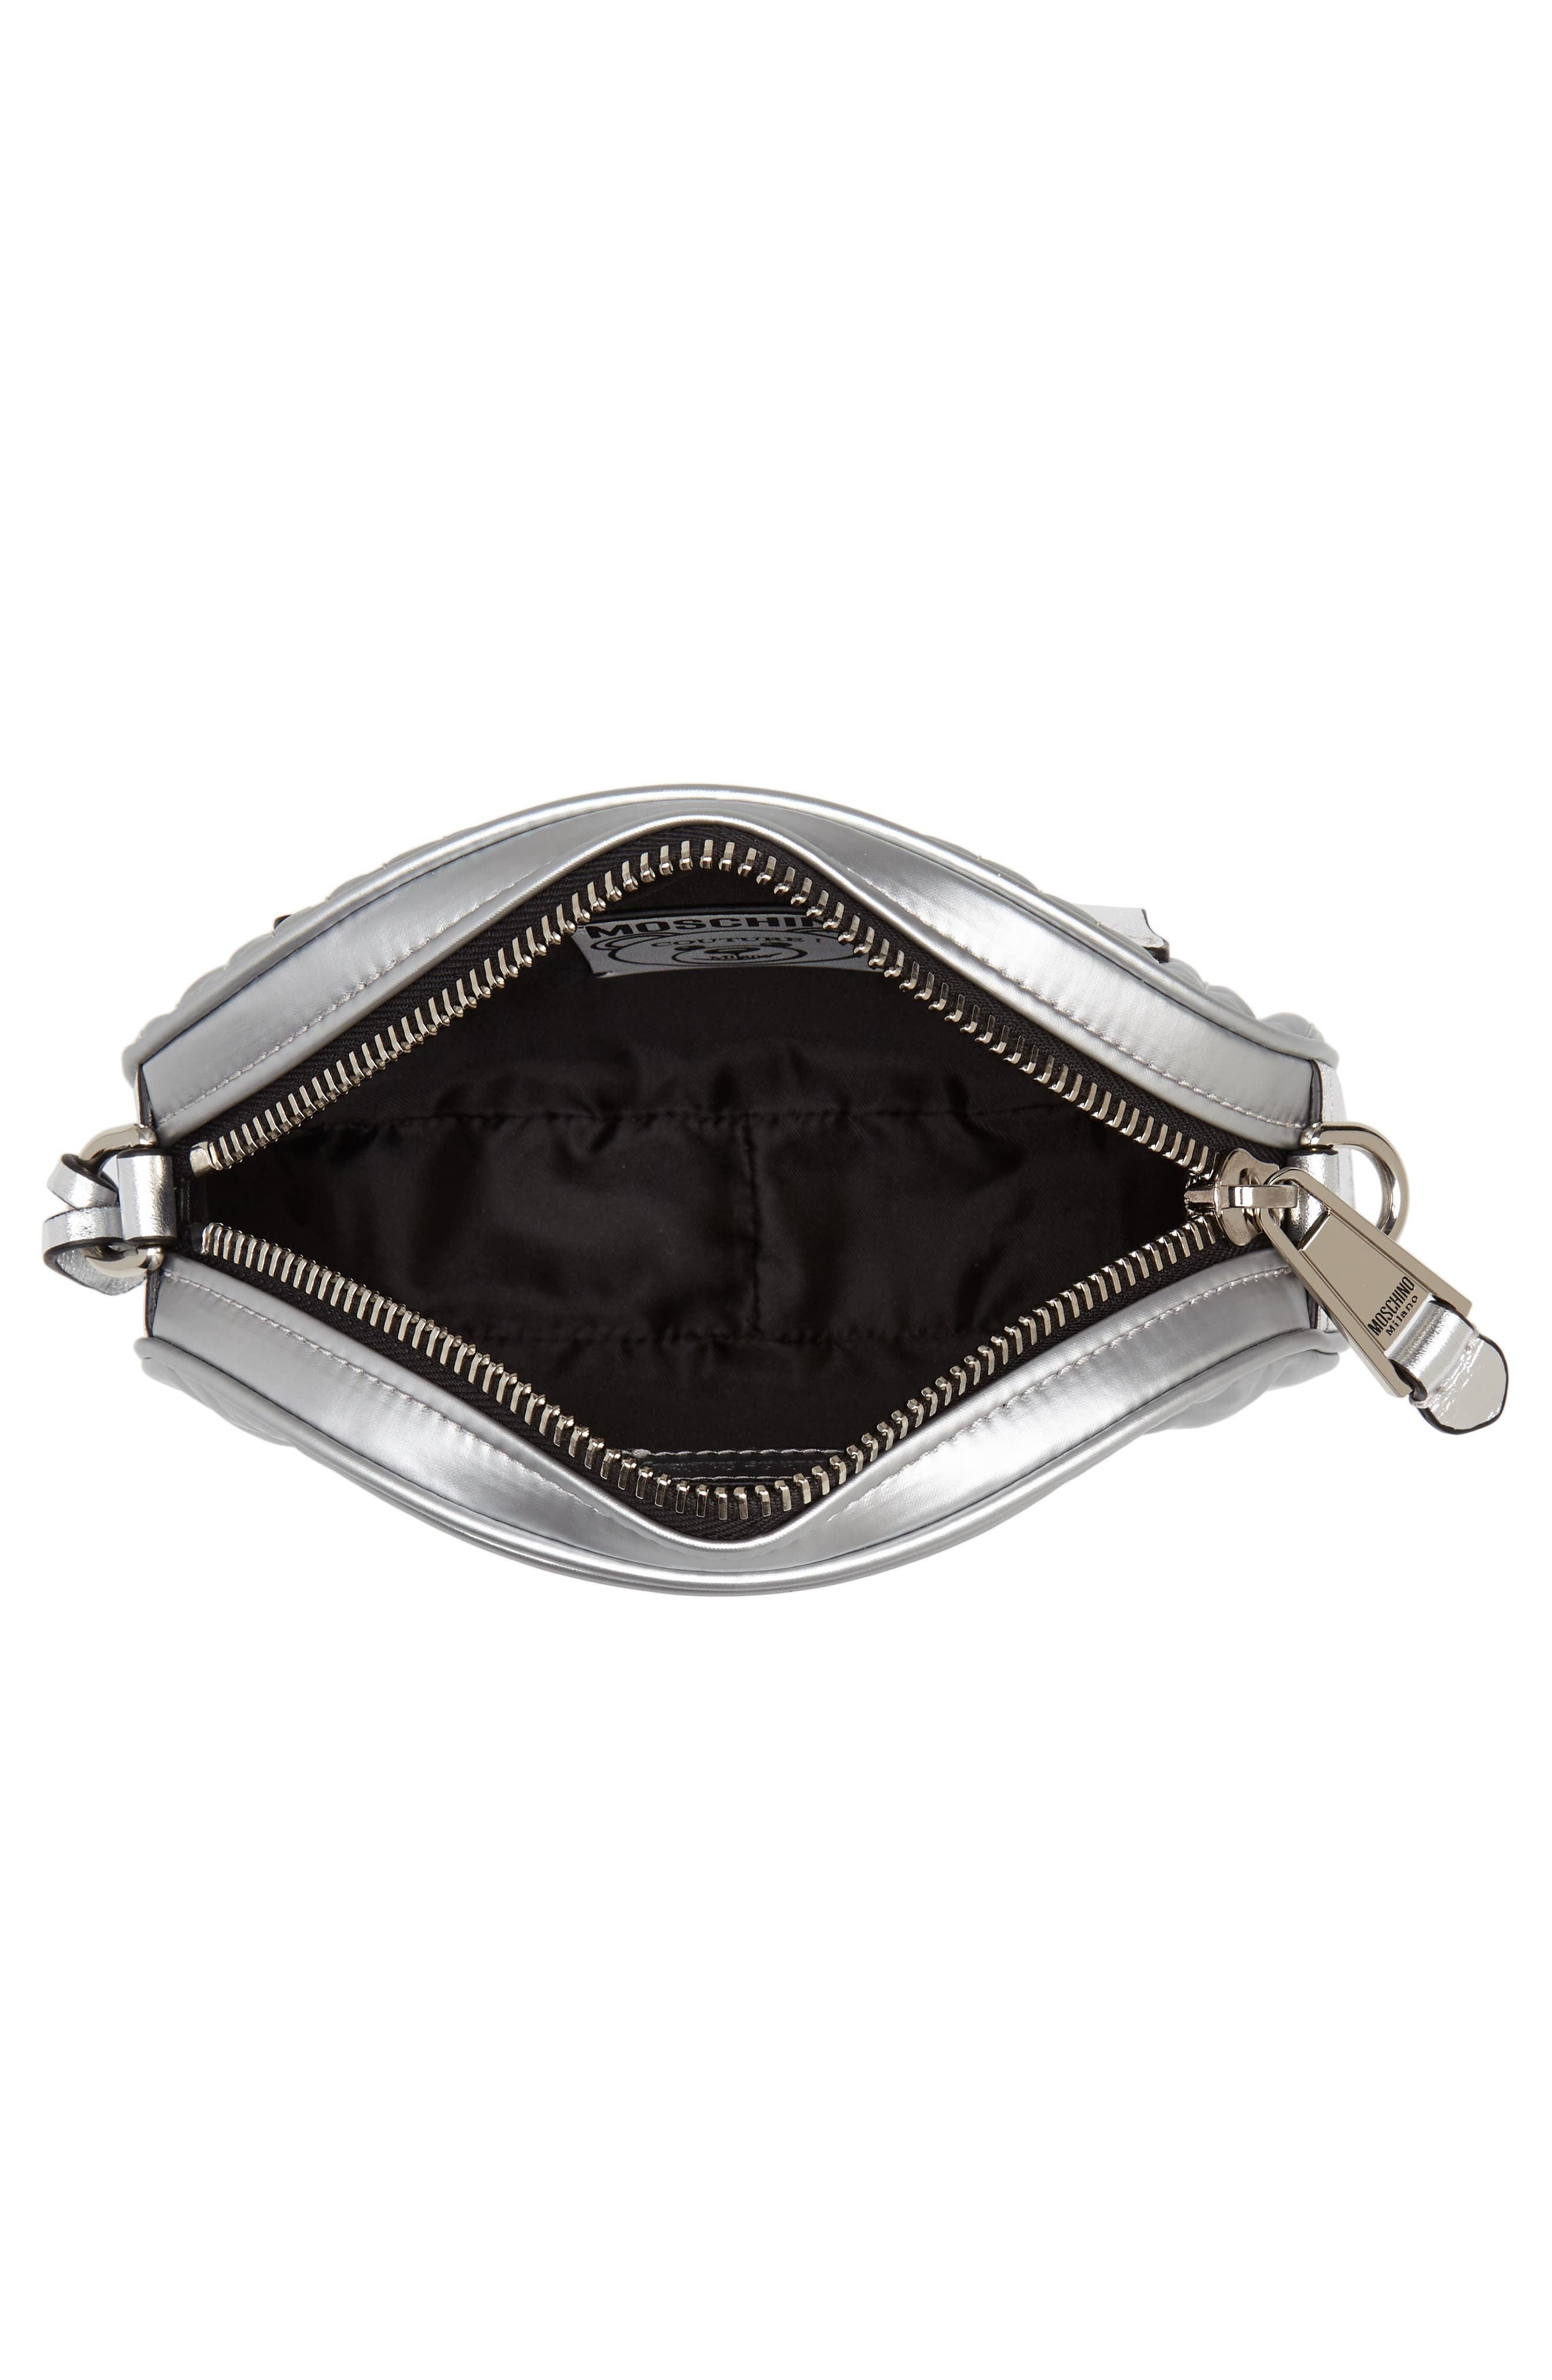 MOSCHINO, Silver Teddy Belt Bag, Alternate thumbnail 5, color, SILVER